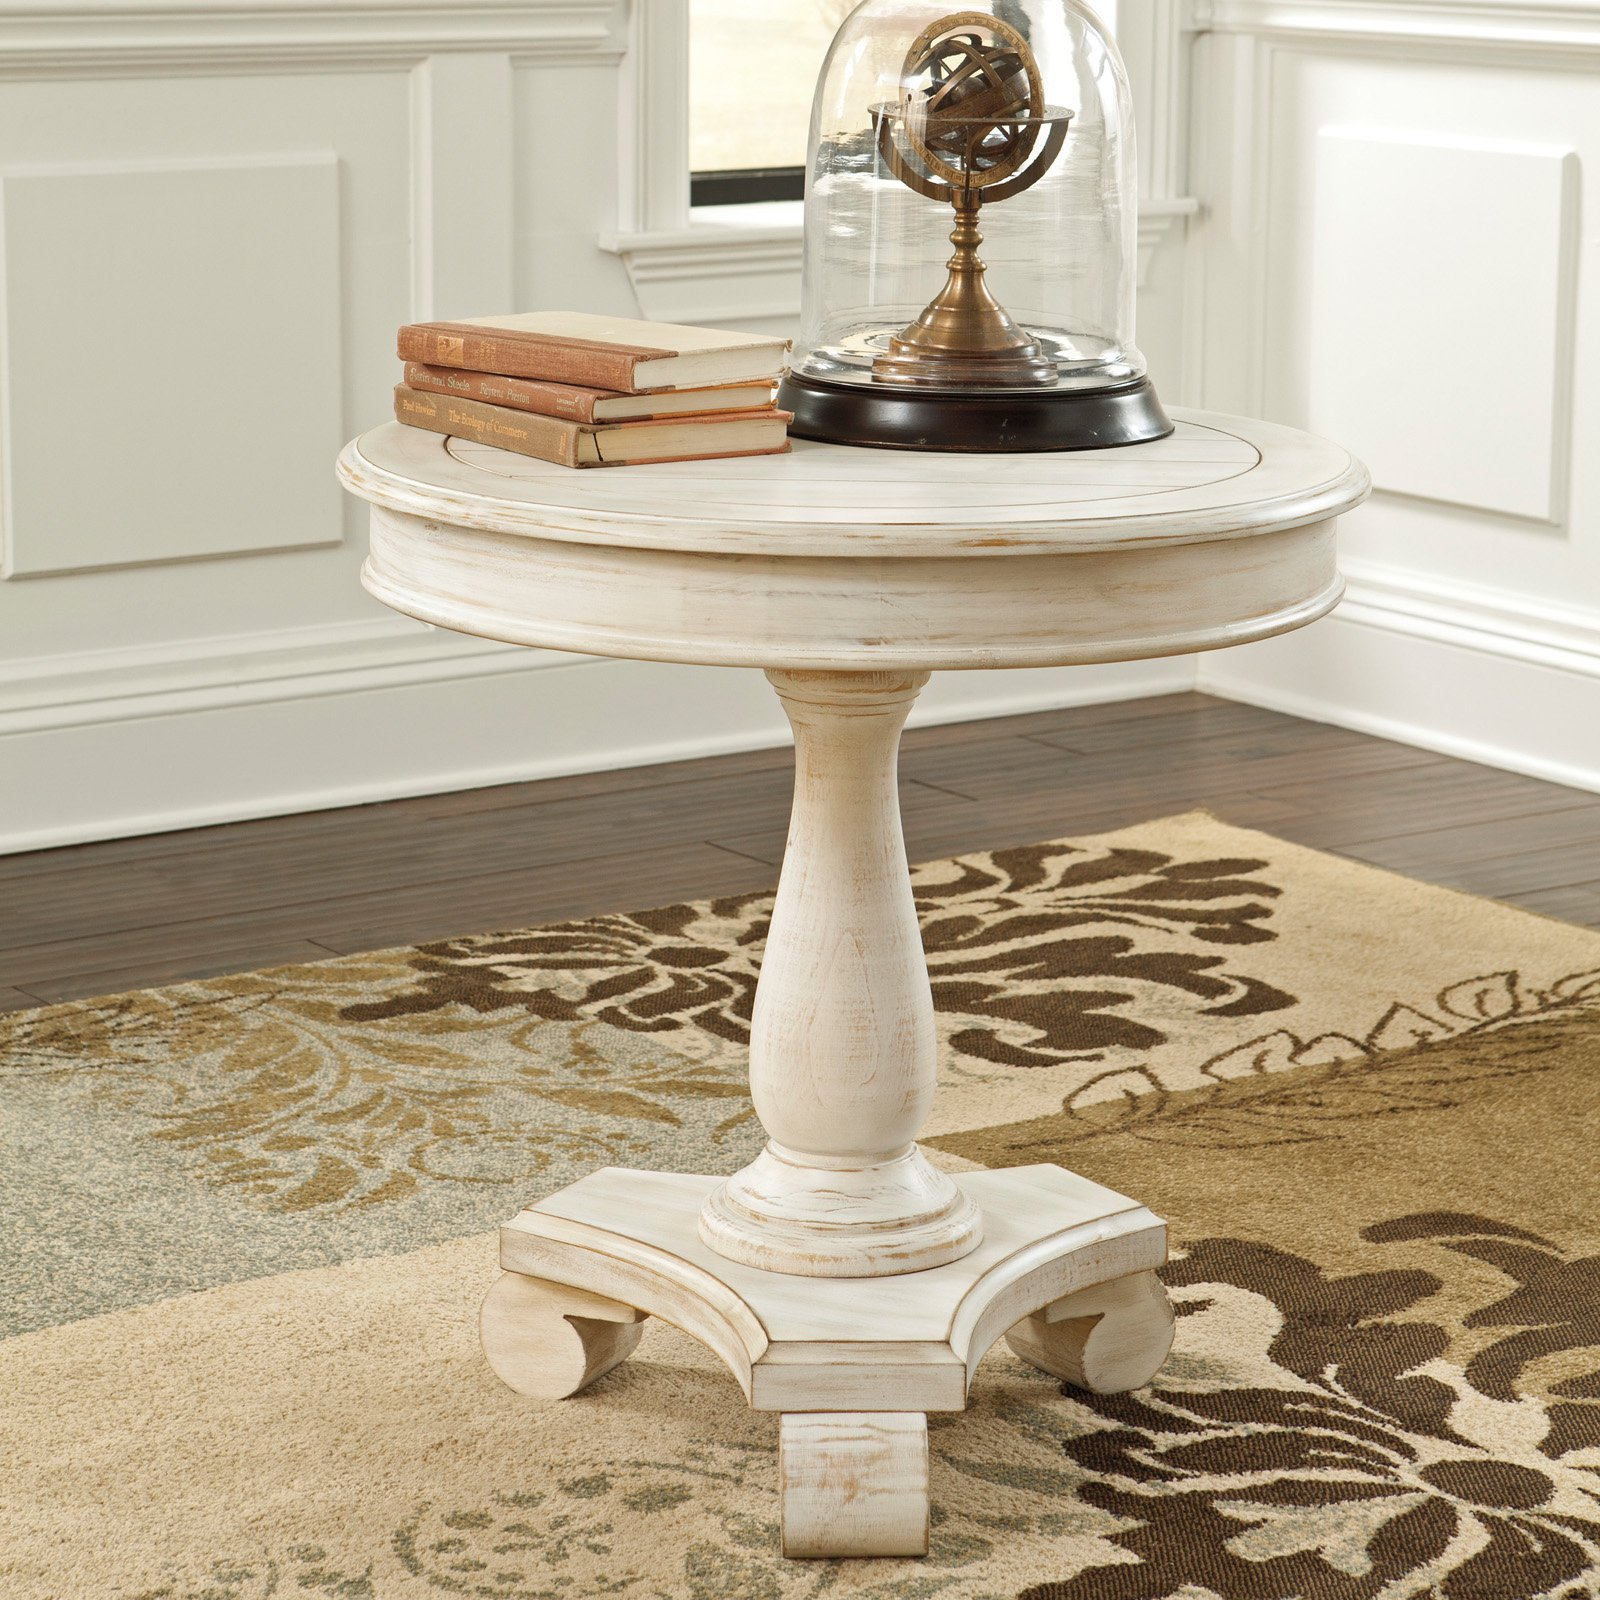 signature design ashley cottage accents white round accent table pedestal dining chairs great furniture toledo chic floor cabinet modern dark wood coffee butcher block island pier